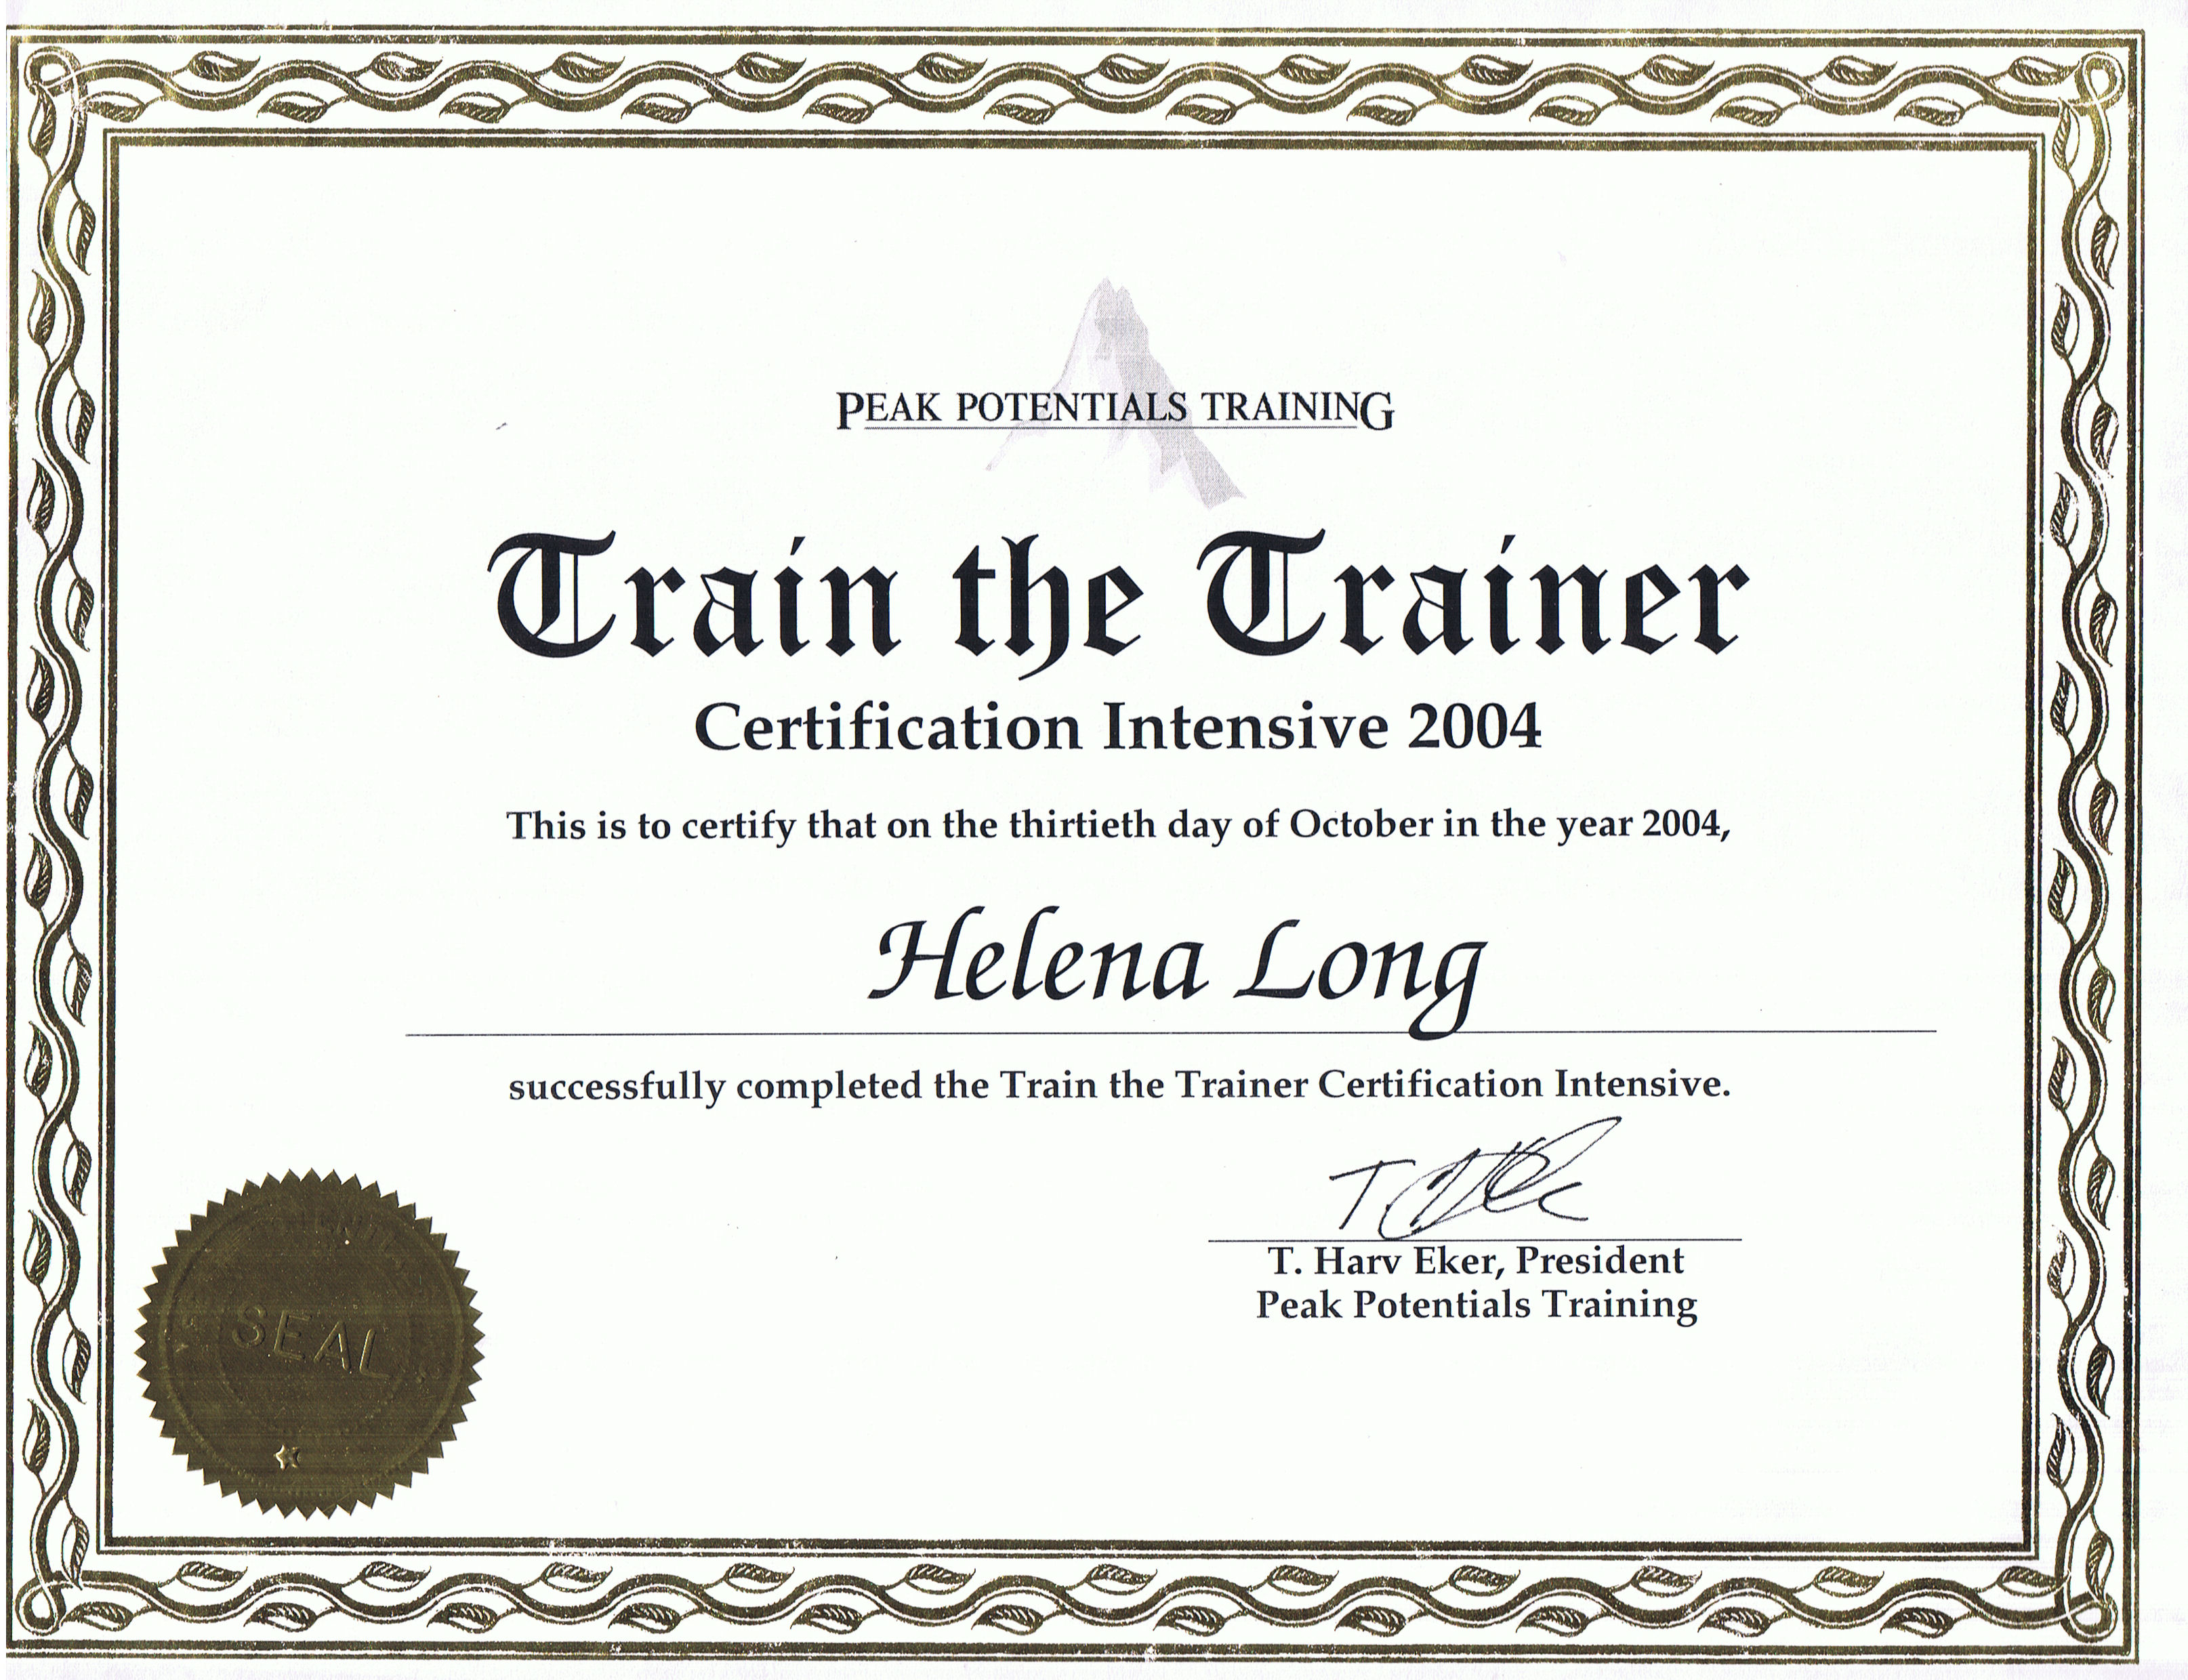 Credentials and qualifications helena long copywriter editor certificate of completion of the train the trainer intensive xflitez Gallery